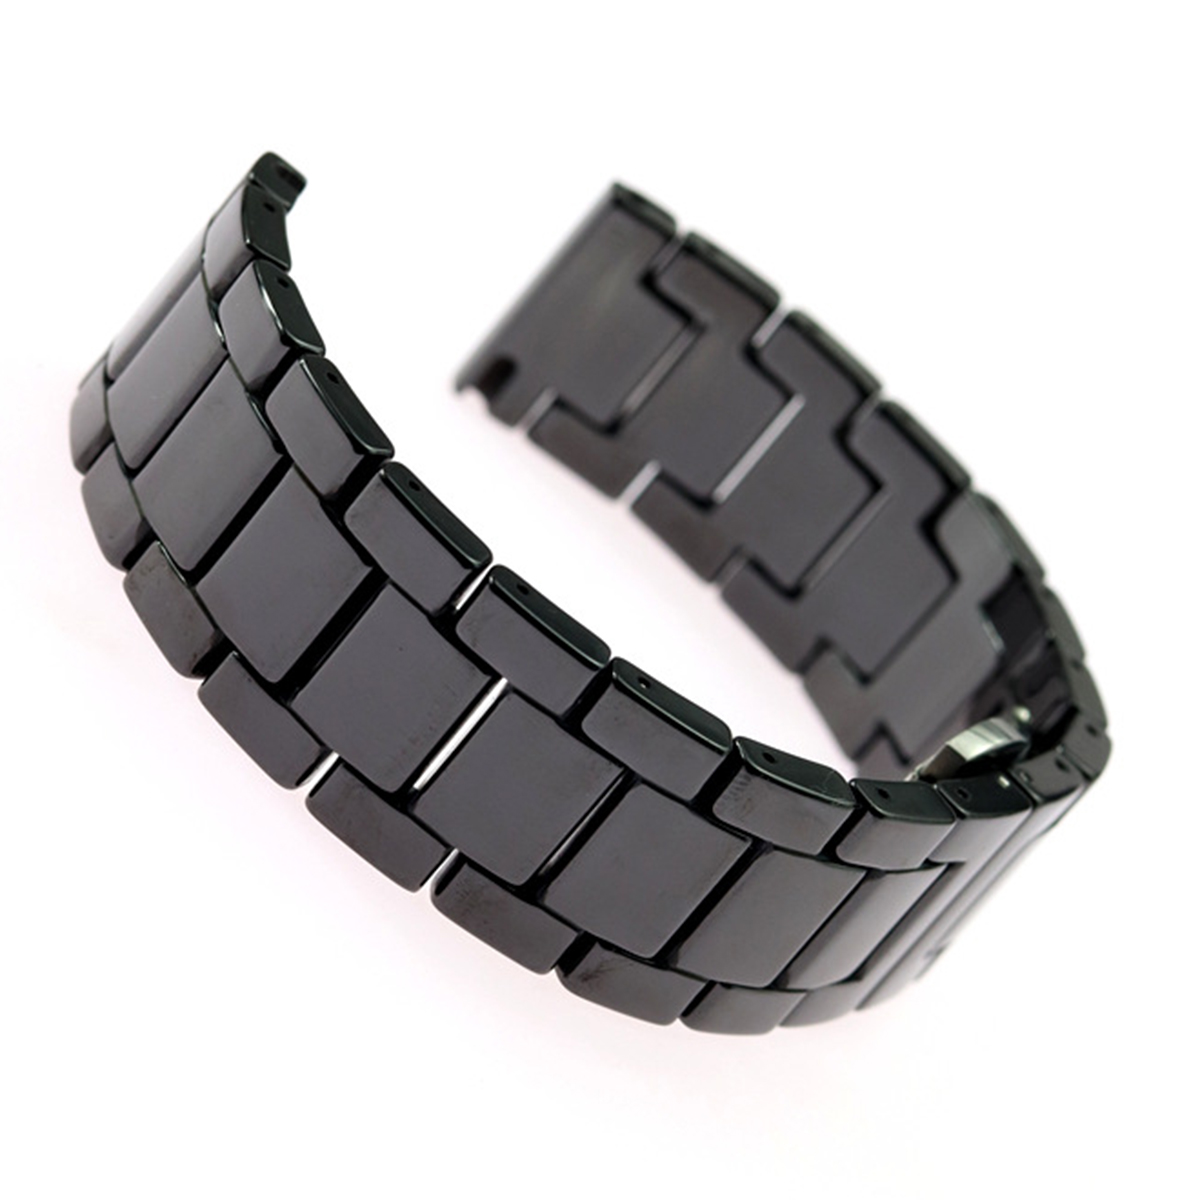 Replacement Ceramic Strap Universal Metal Folding Clasp Watch Band Strap 20mm / 22mm